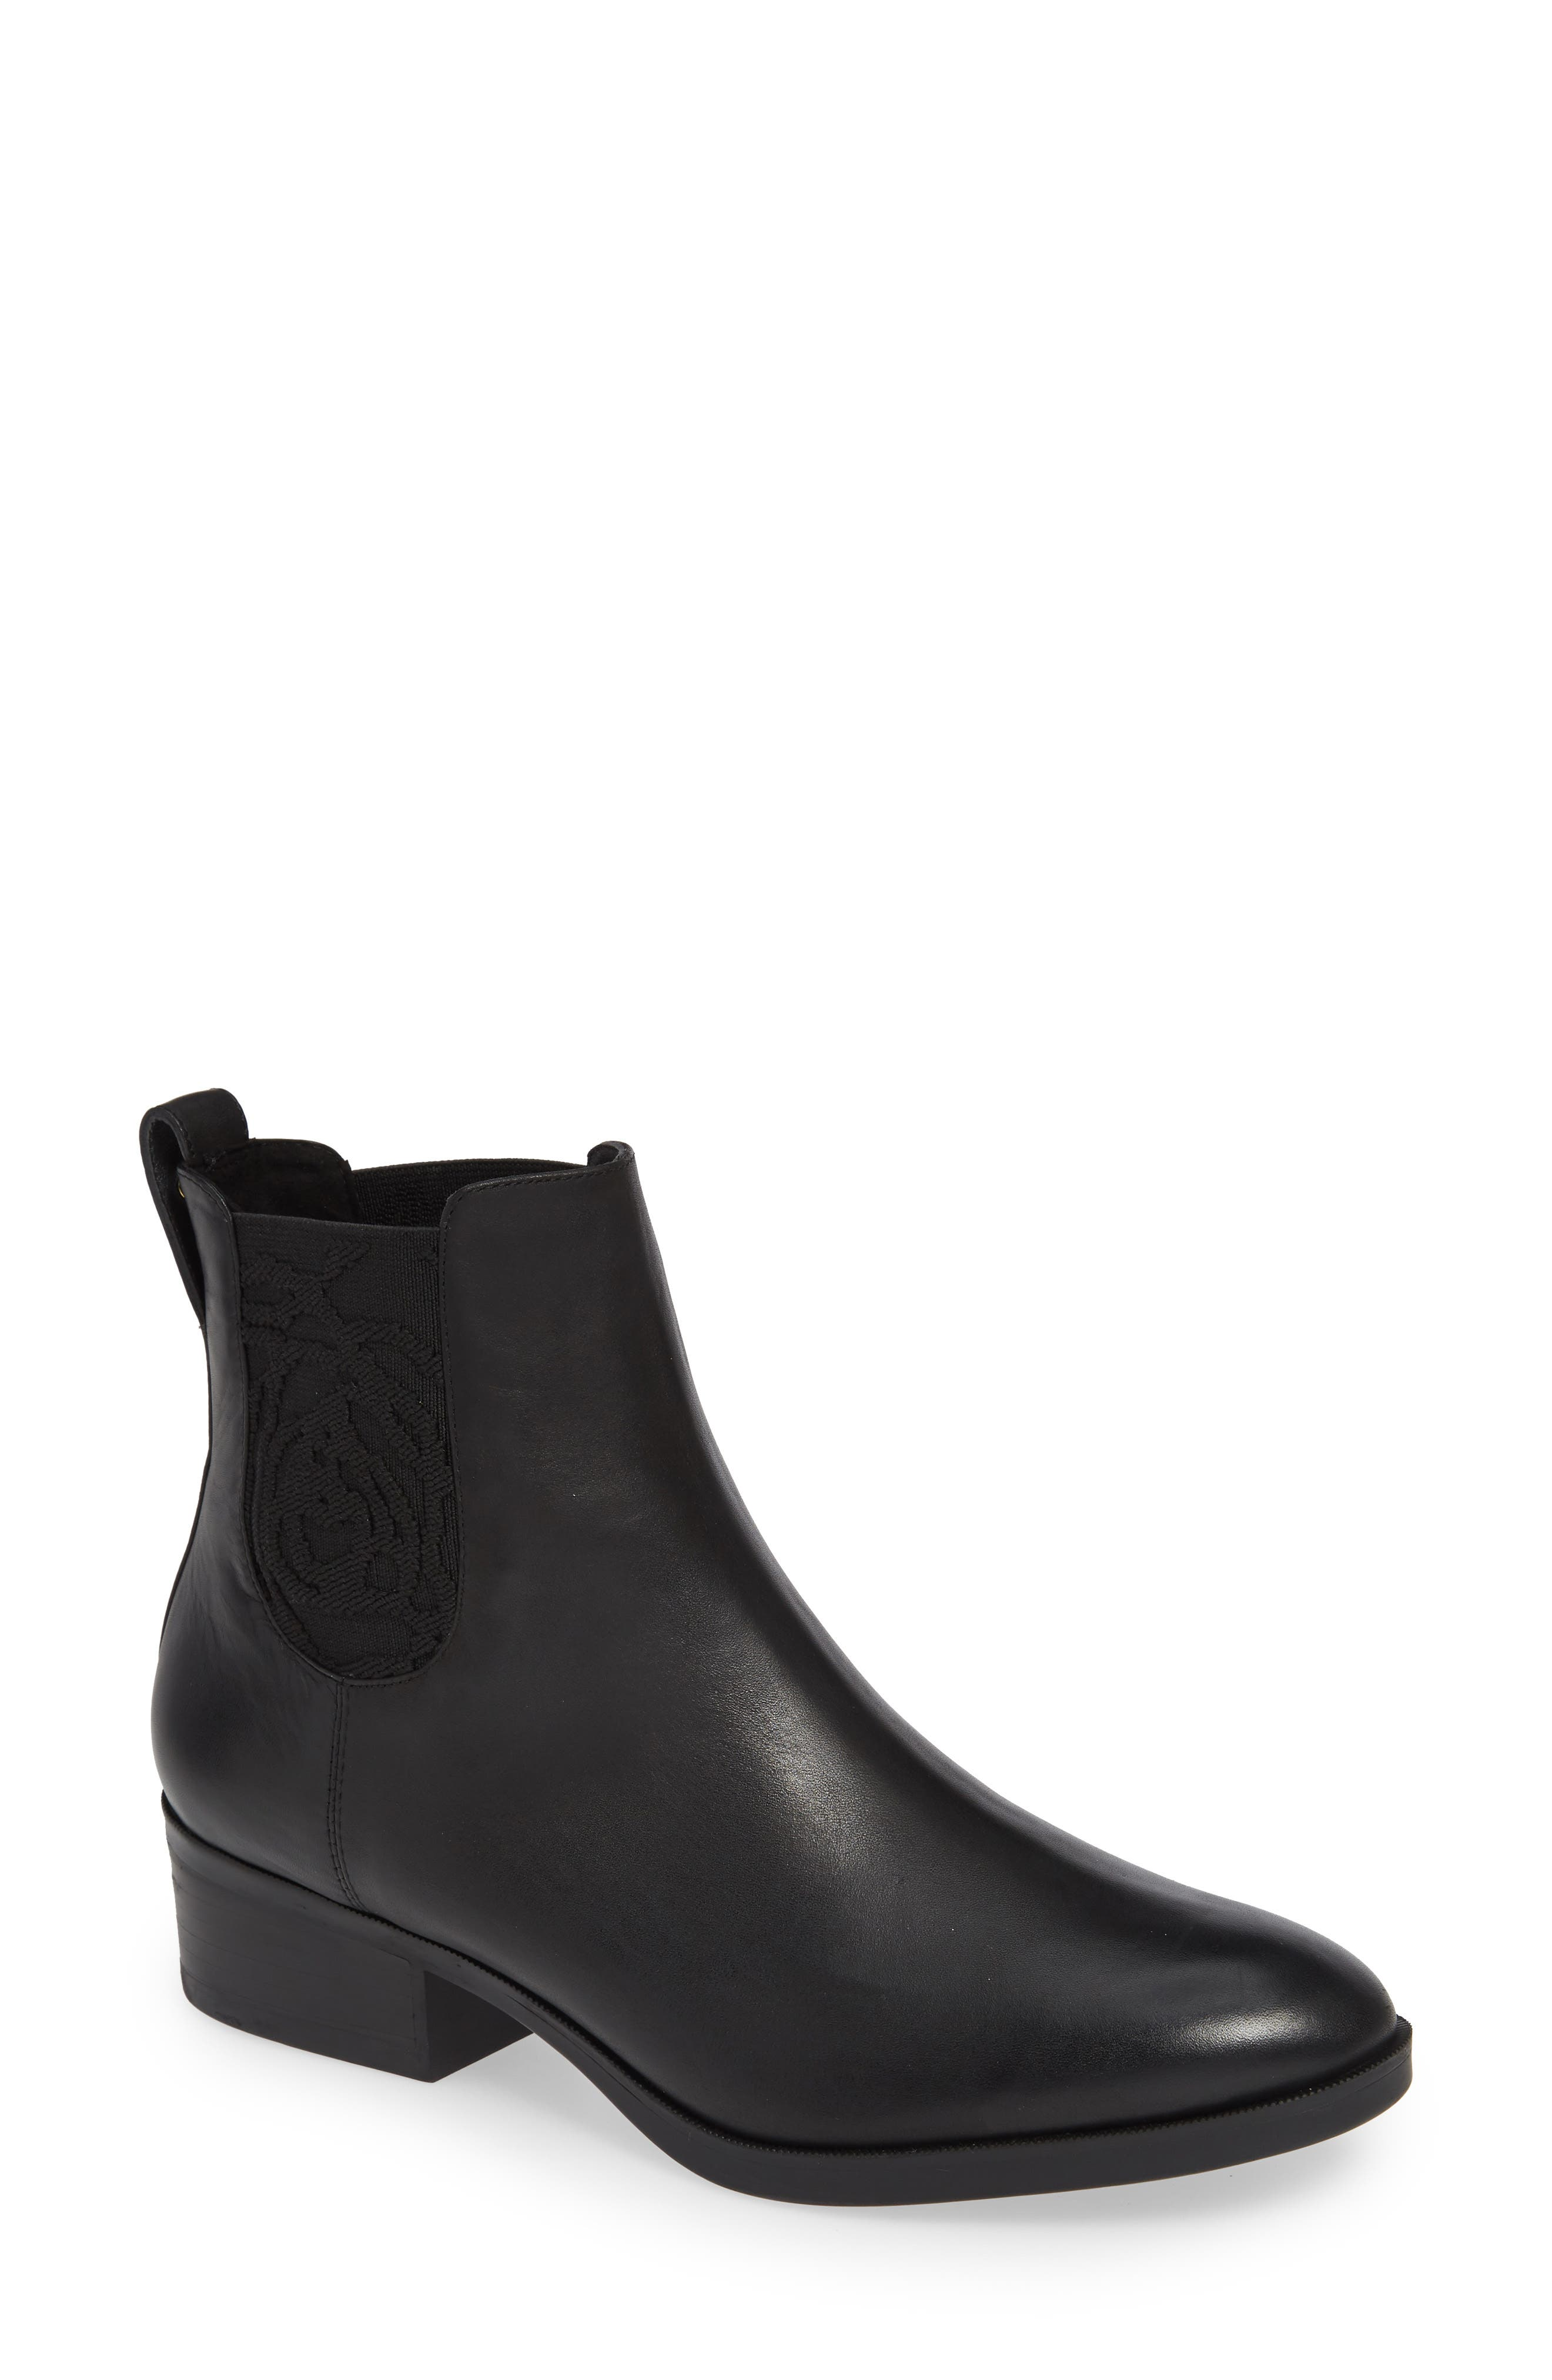 Taryn Rose Womens Gina Ankle Boot